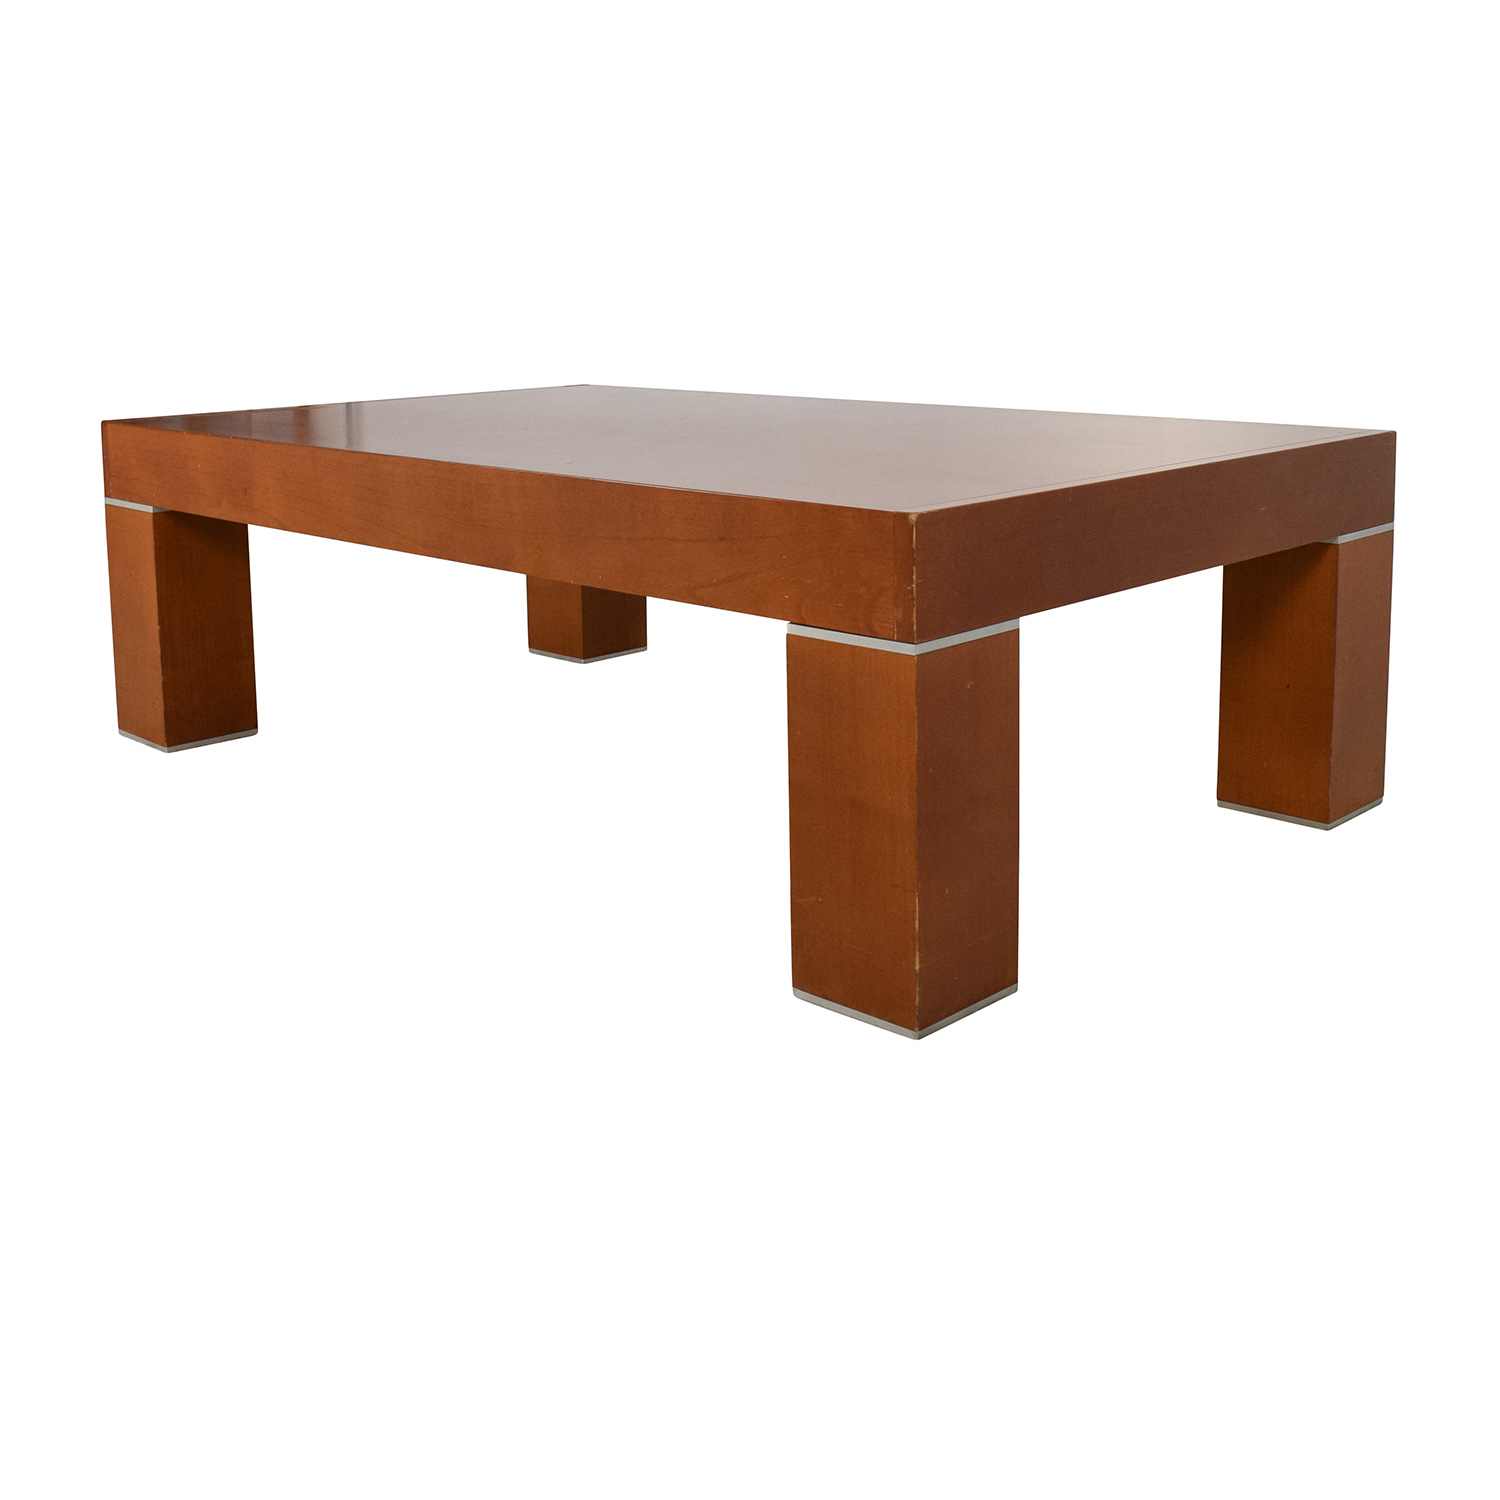 86 off roche bobois paris roche bobois paris wood coffee table tables Home furniture coffee tables